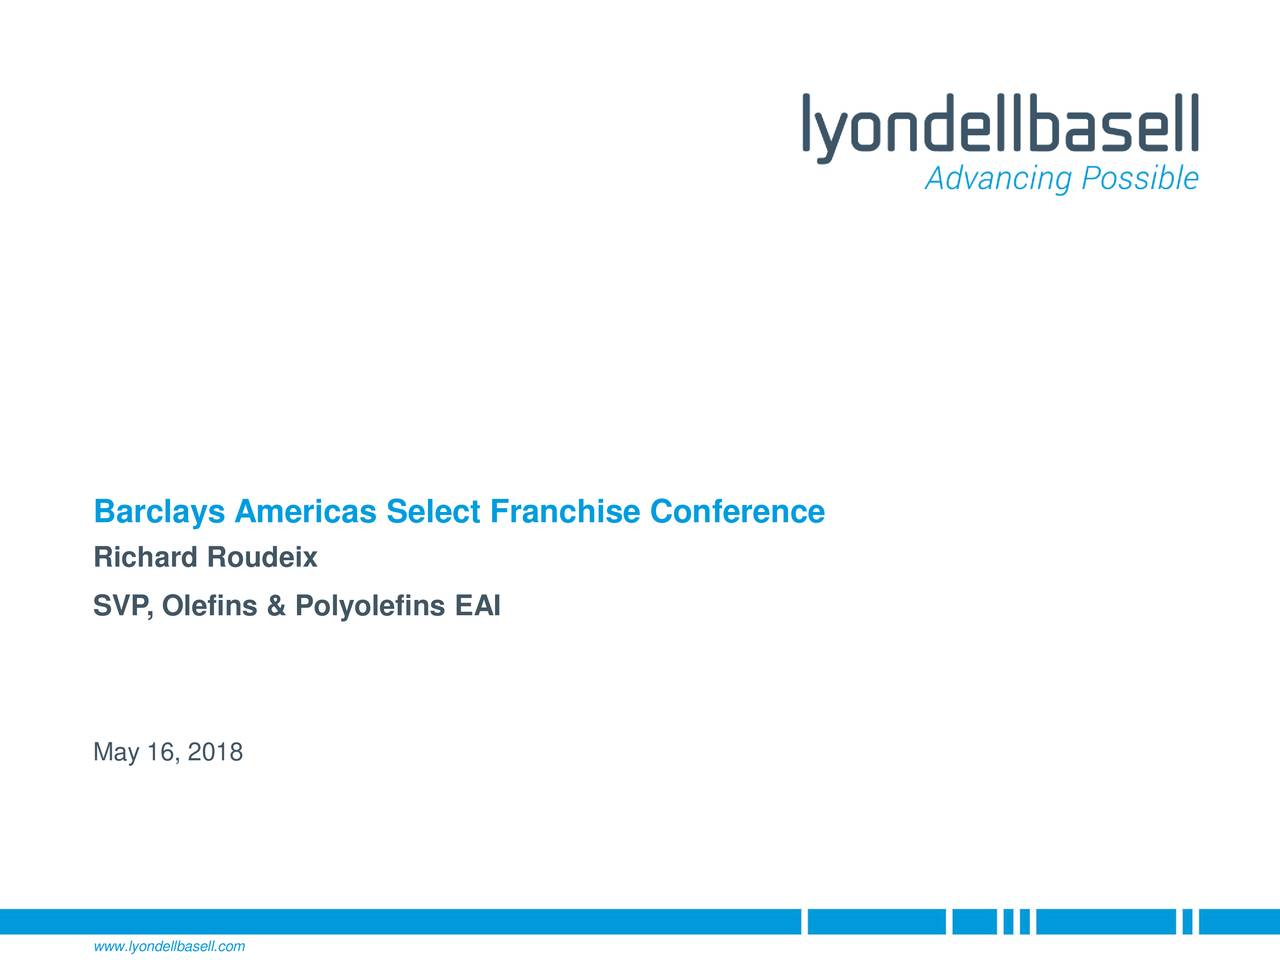 LyondellBasell Industries (LYB) Presents At Barclays